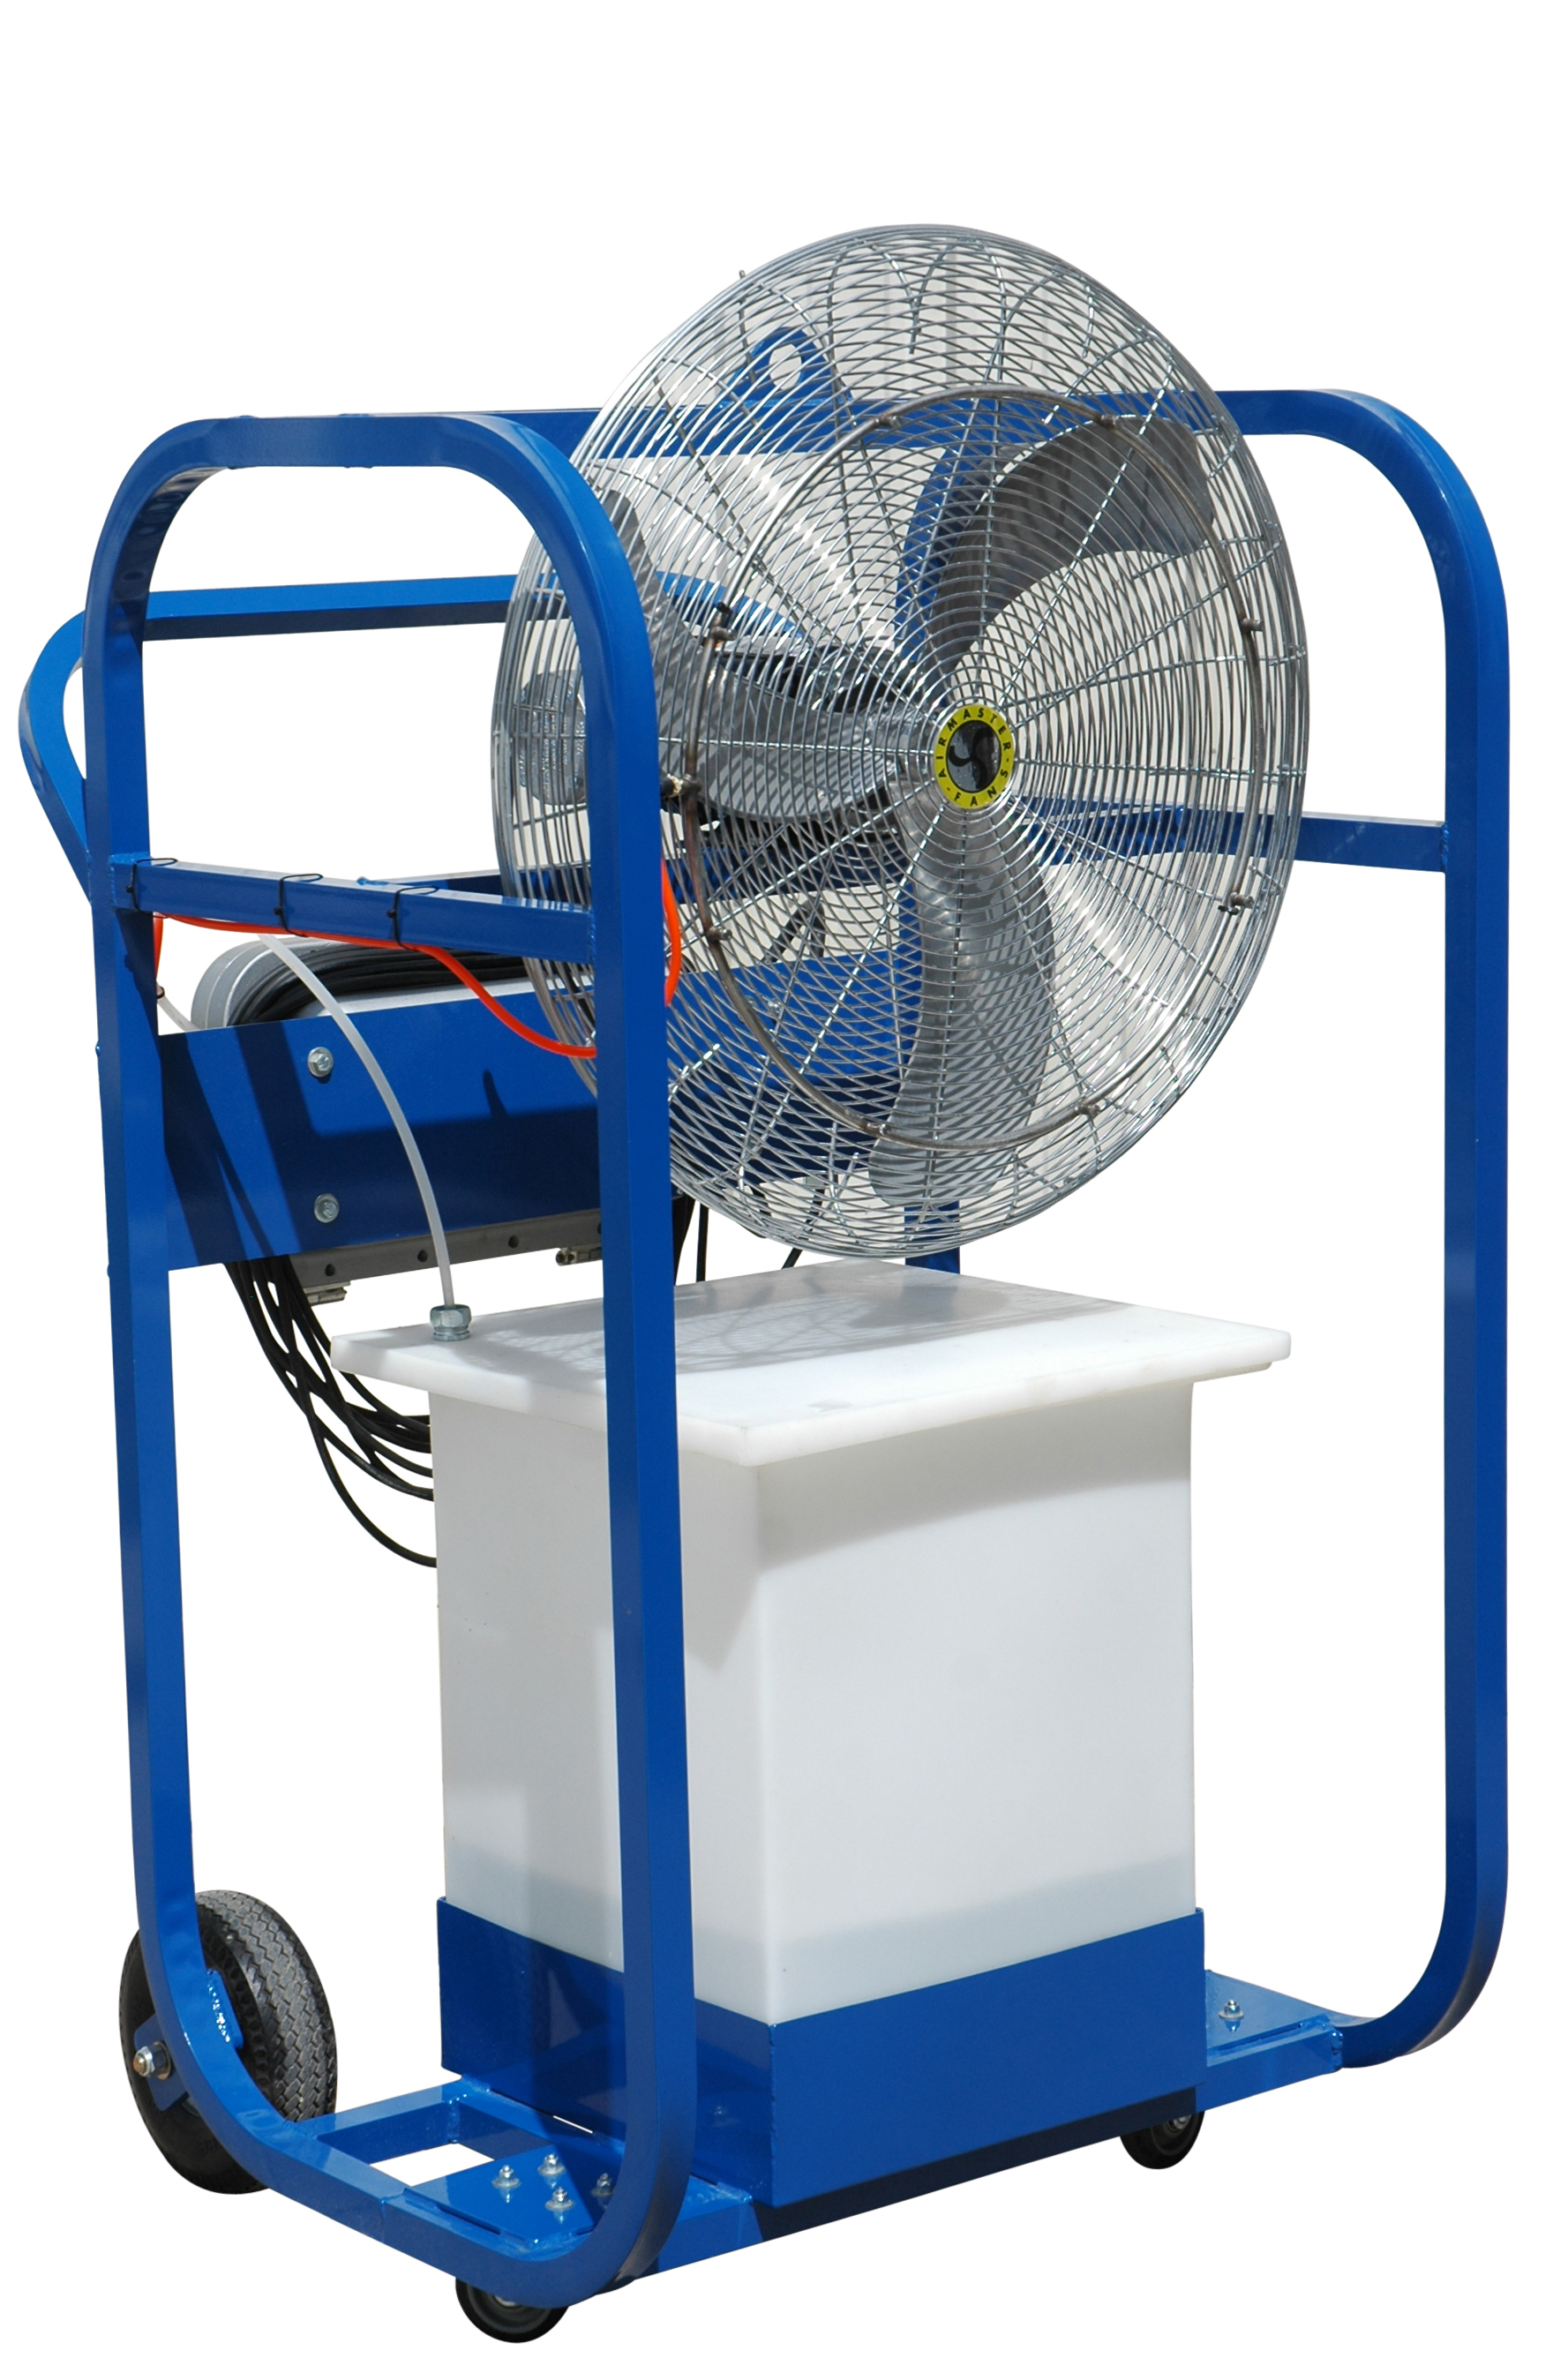 explosion proof portable air chiller with 32 gallon water tank